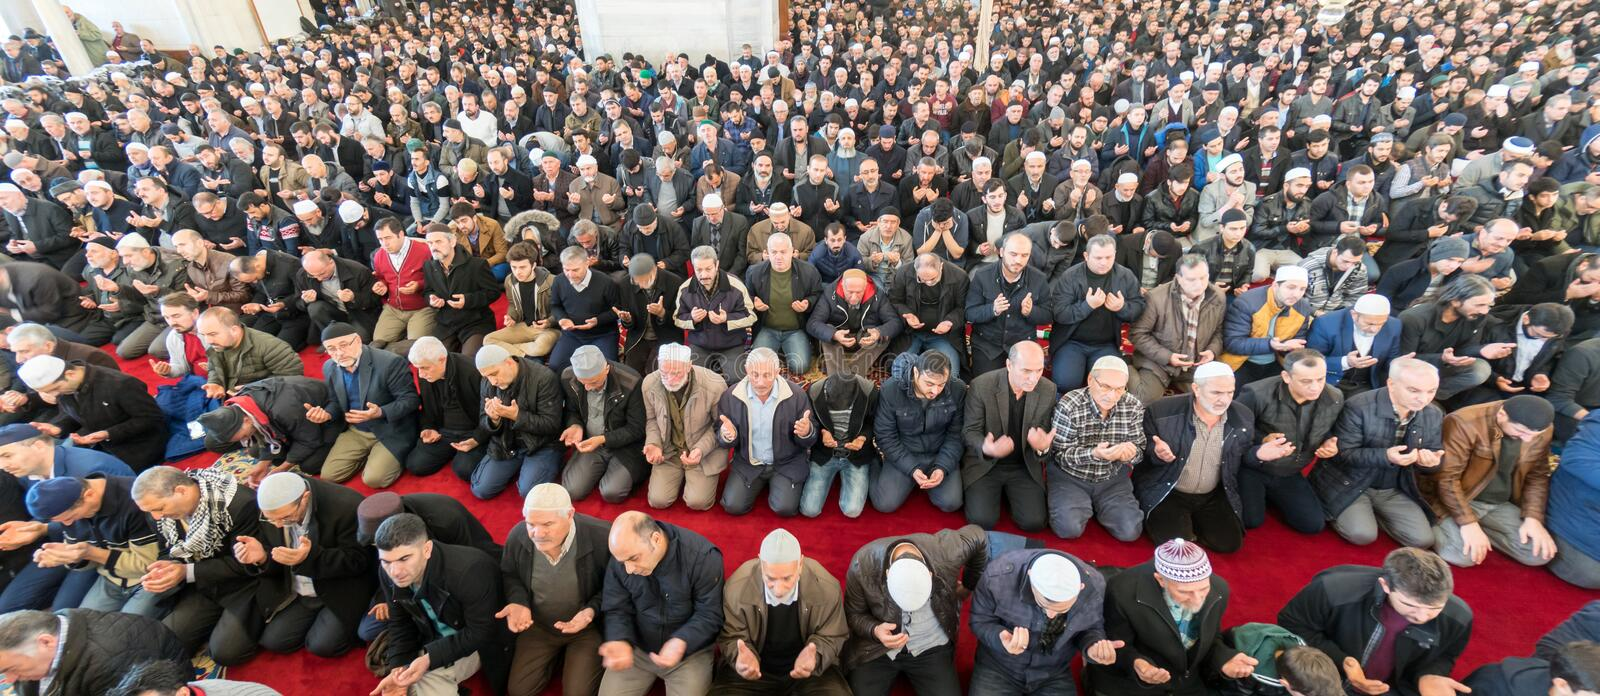 Friday prayer is a prayer performed once a week by Muslims. ISTANBUL, TURKEY - DEC 8: Friday pray in congregation male Muslims Fatih Mosque on December 8, 2017 stock photos